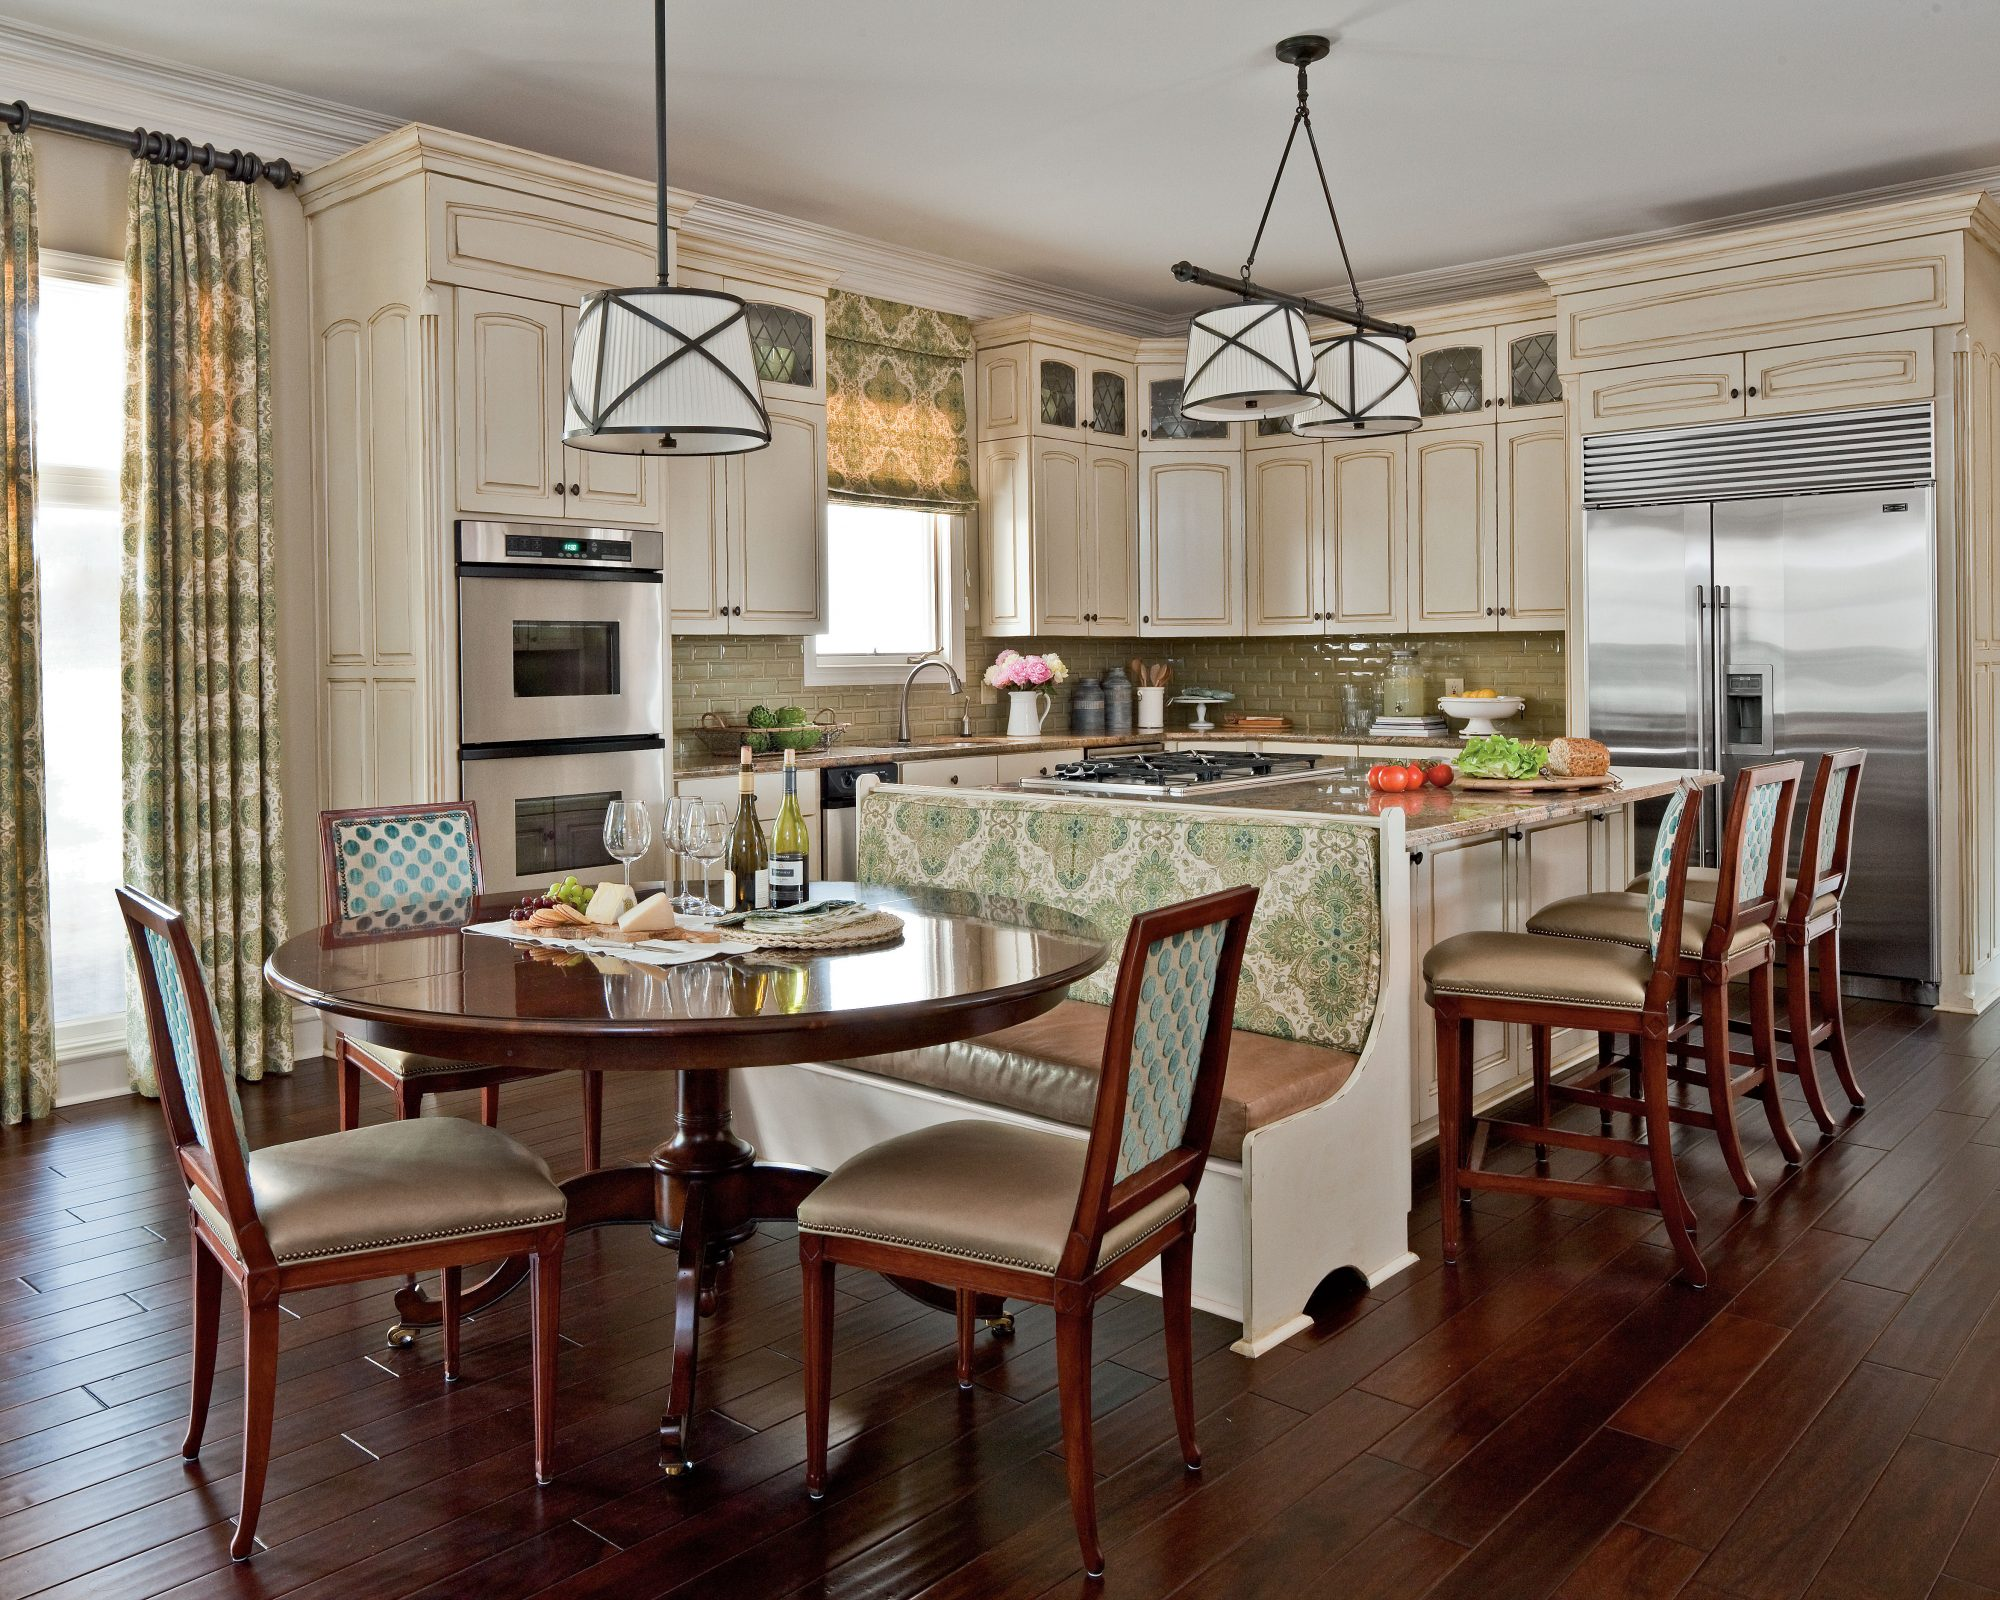 traditional kitchen design. Get The Traditional Look Kitchen Design